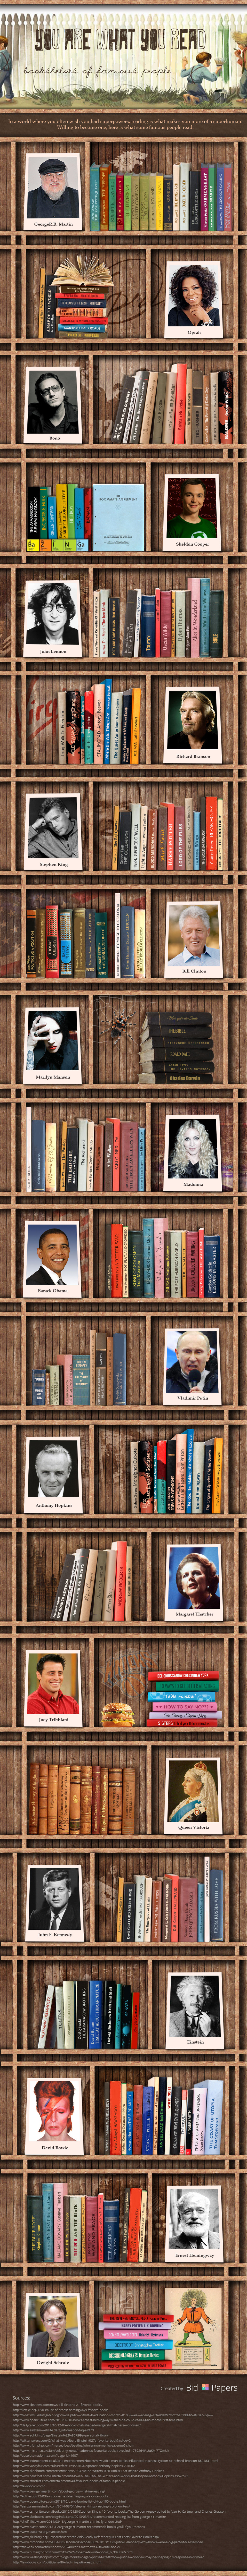 bookshelves of famous people